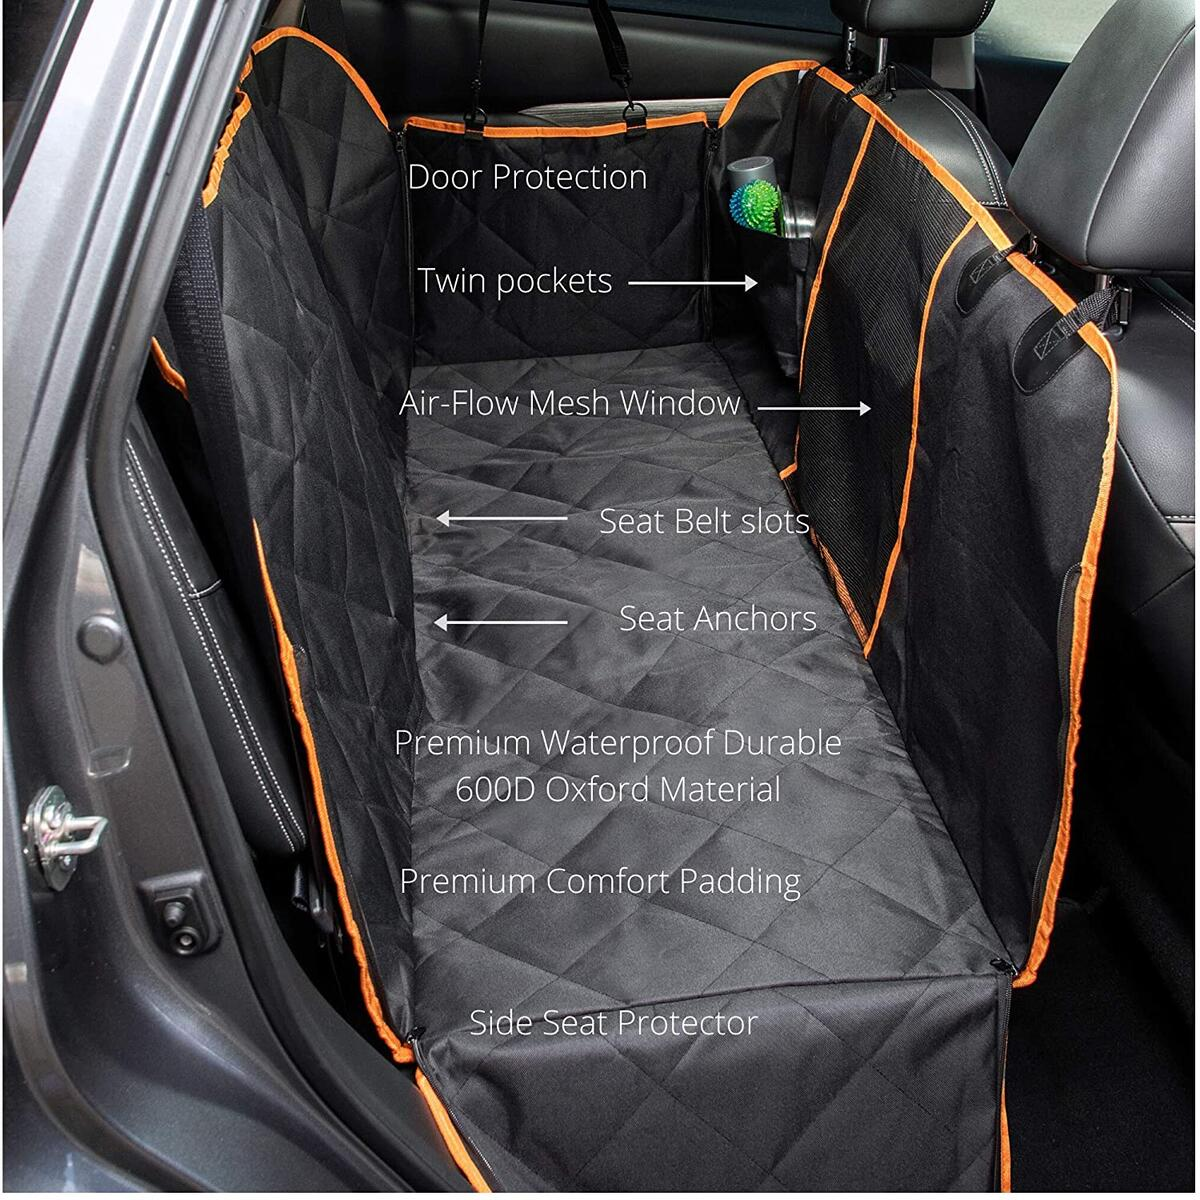 Peppertree Pets Dog Car Seat Covers for Cars Dog Seat Cover for Back Seat Heavy Duty Scratch Proof Nonslip Waterproof Car Seat Protector Airflow Mesh Window 2 Pockets Back Seat Covers for Cars SUVs